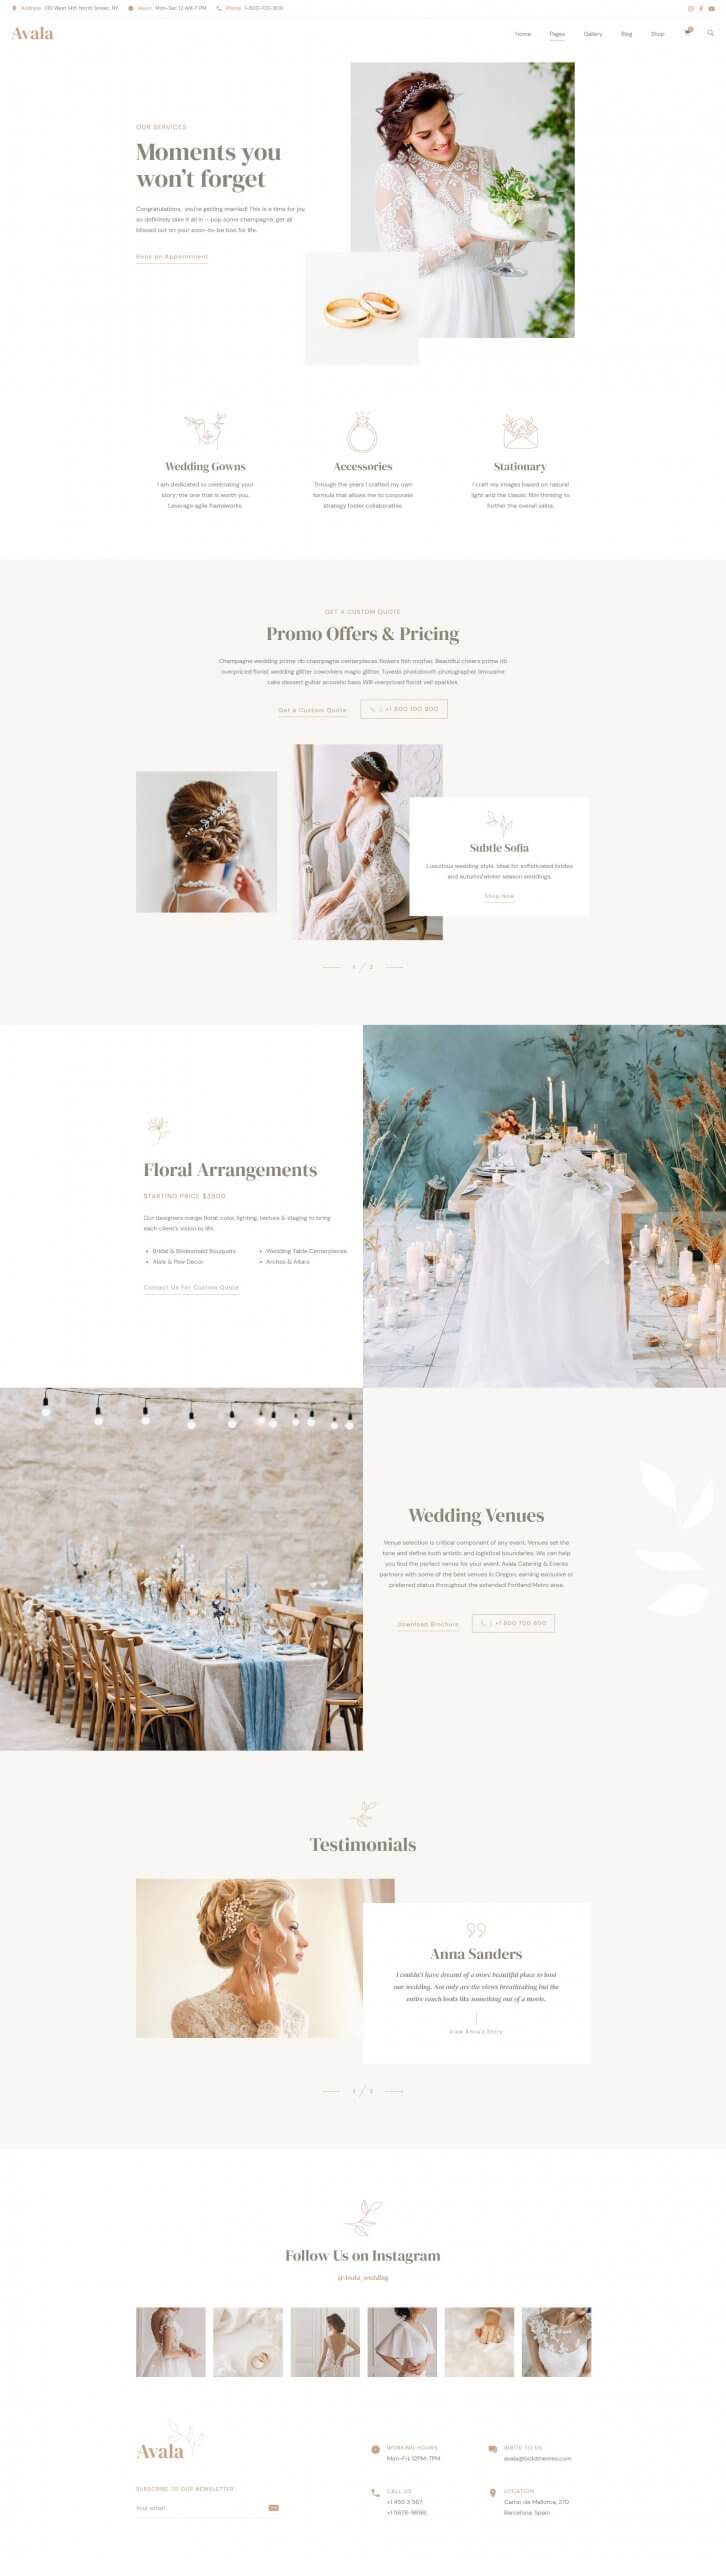 http://avala.bold-themes.com/wp-content/uploads/2021/02/Spring-Services-scaled.jpg